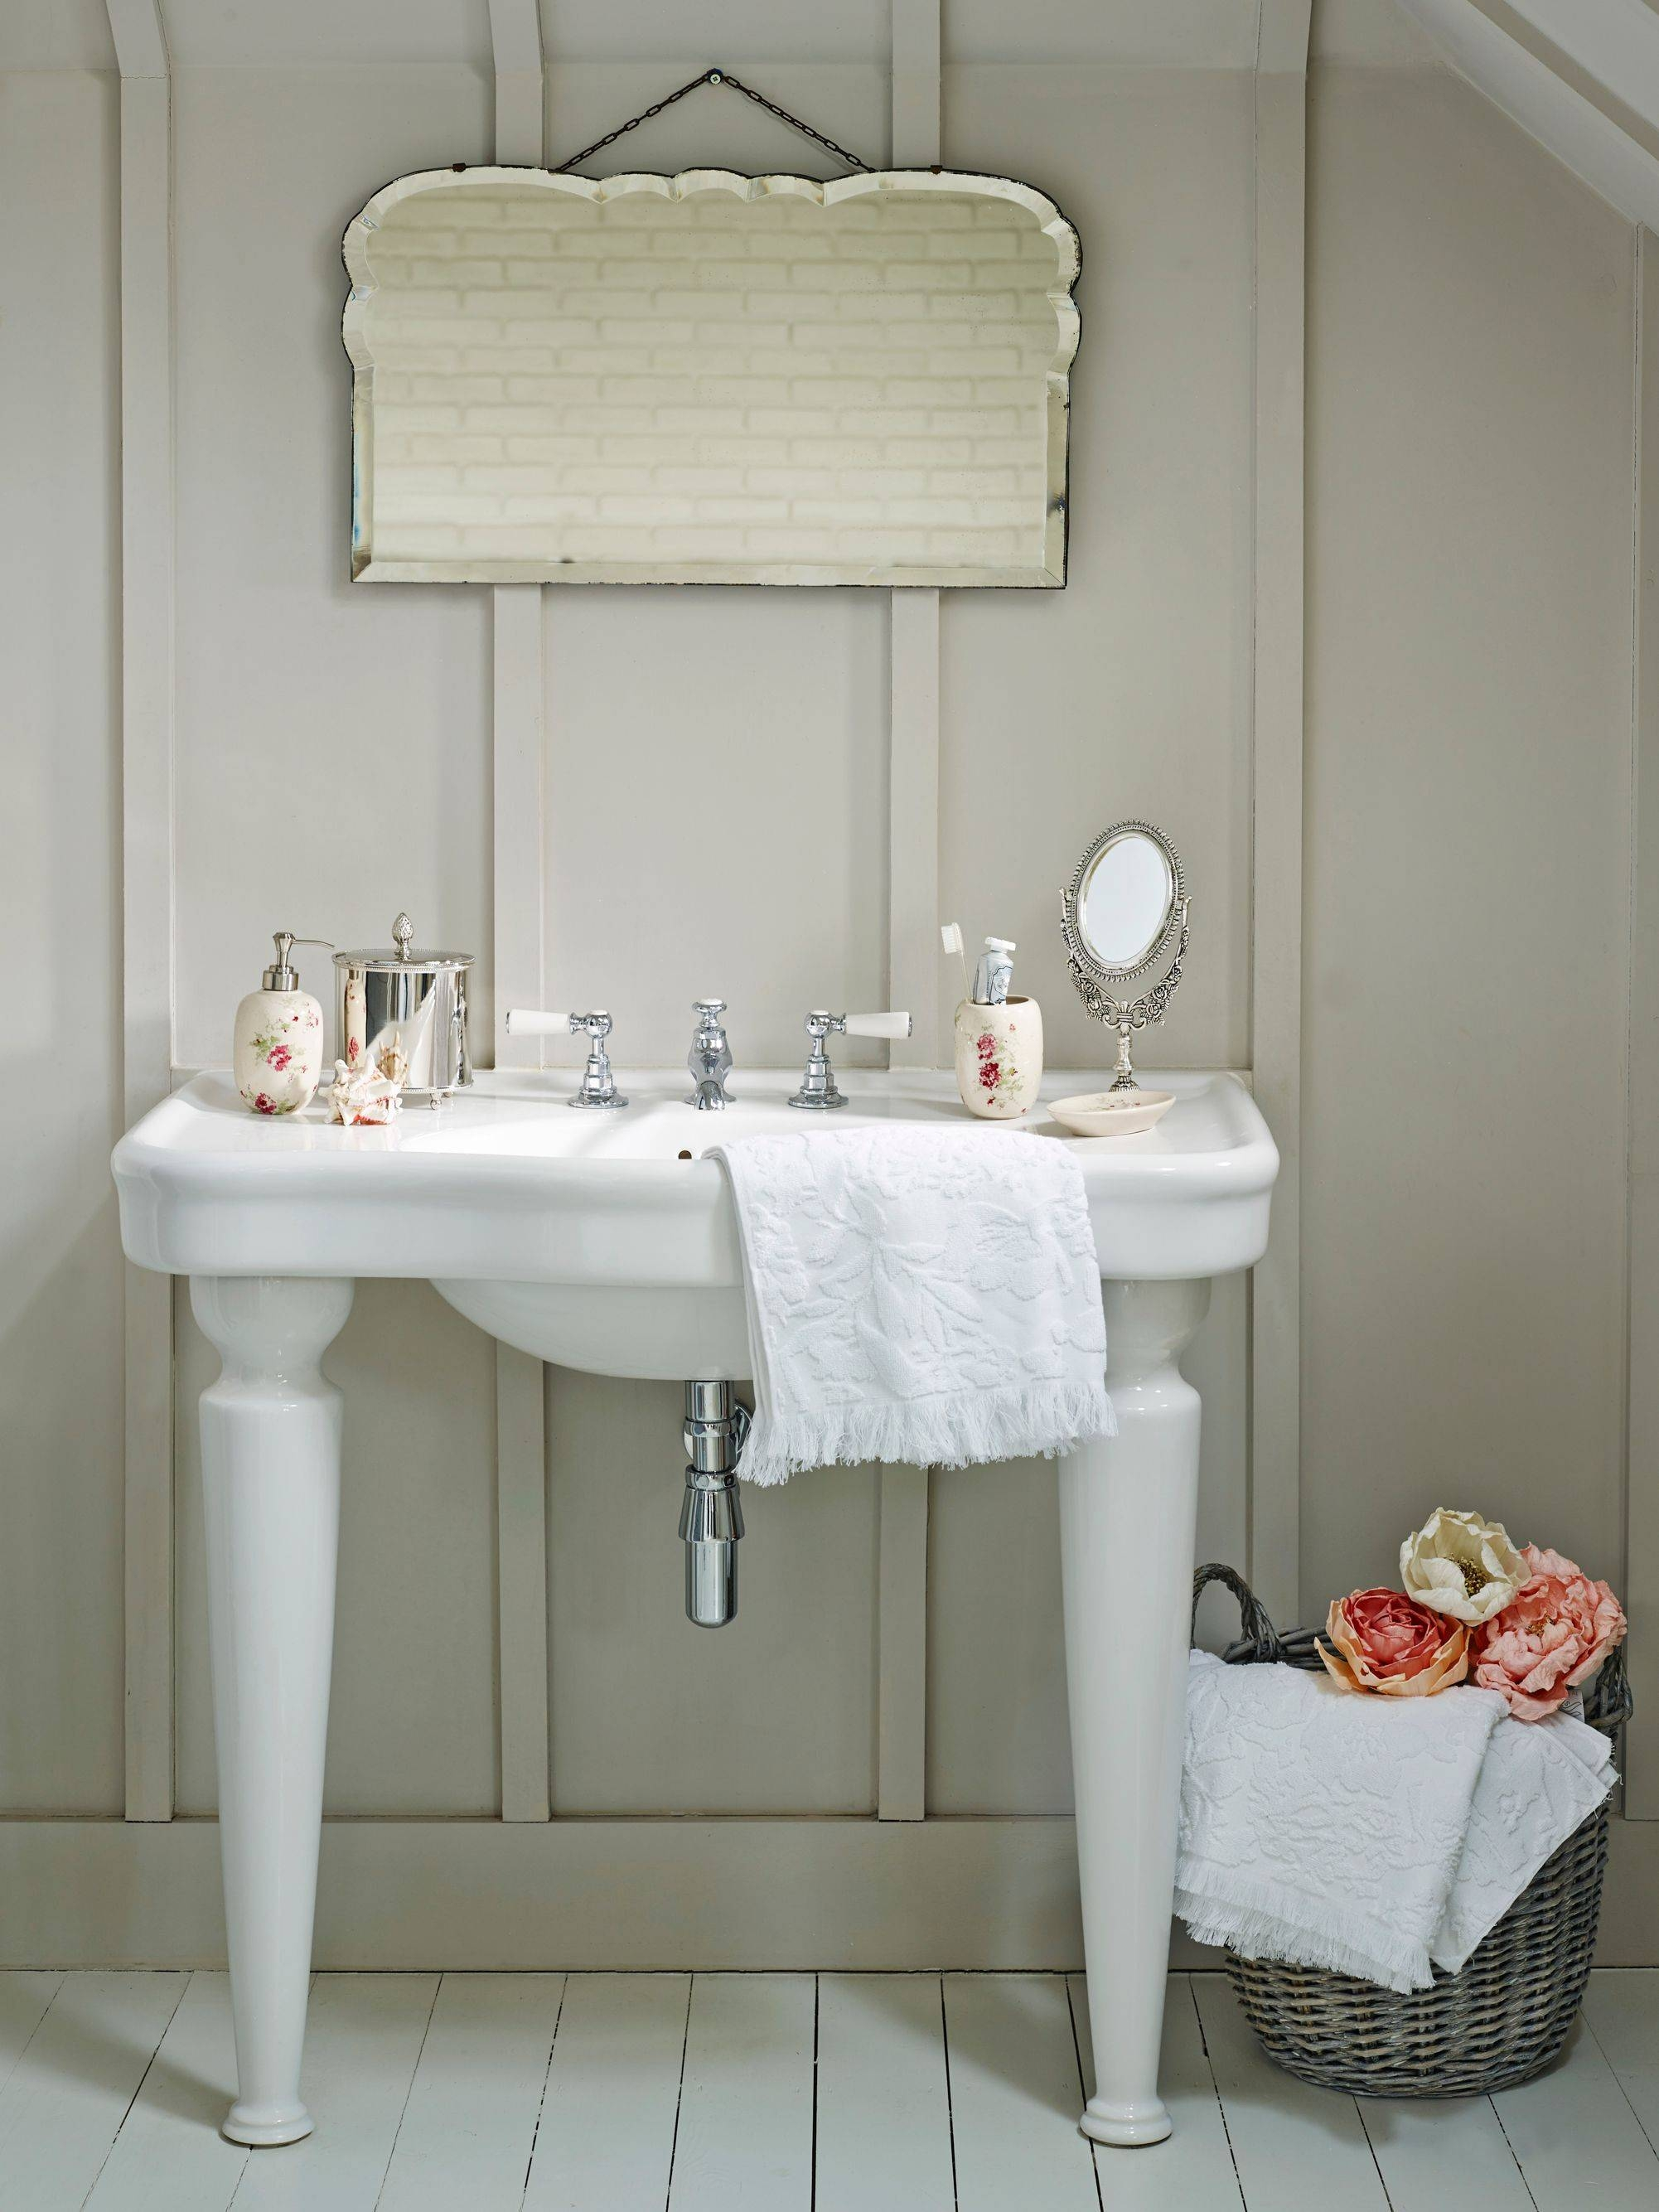 Bright Inspiration Shabby Chic Bathroom Mirror Graphicdesigns Co Pertaining To Shabby Chic Bathroom Mirrors (View 3 of 15)